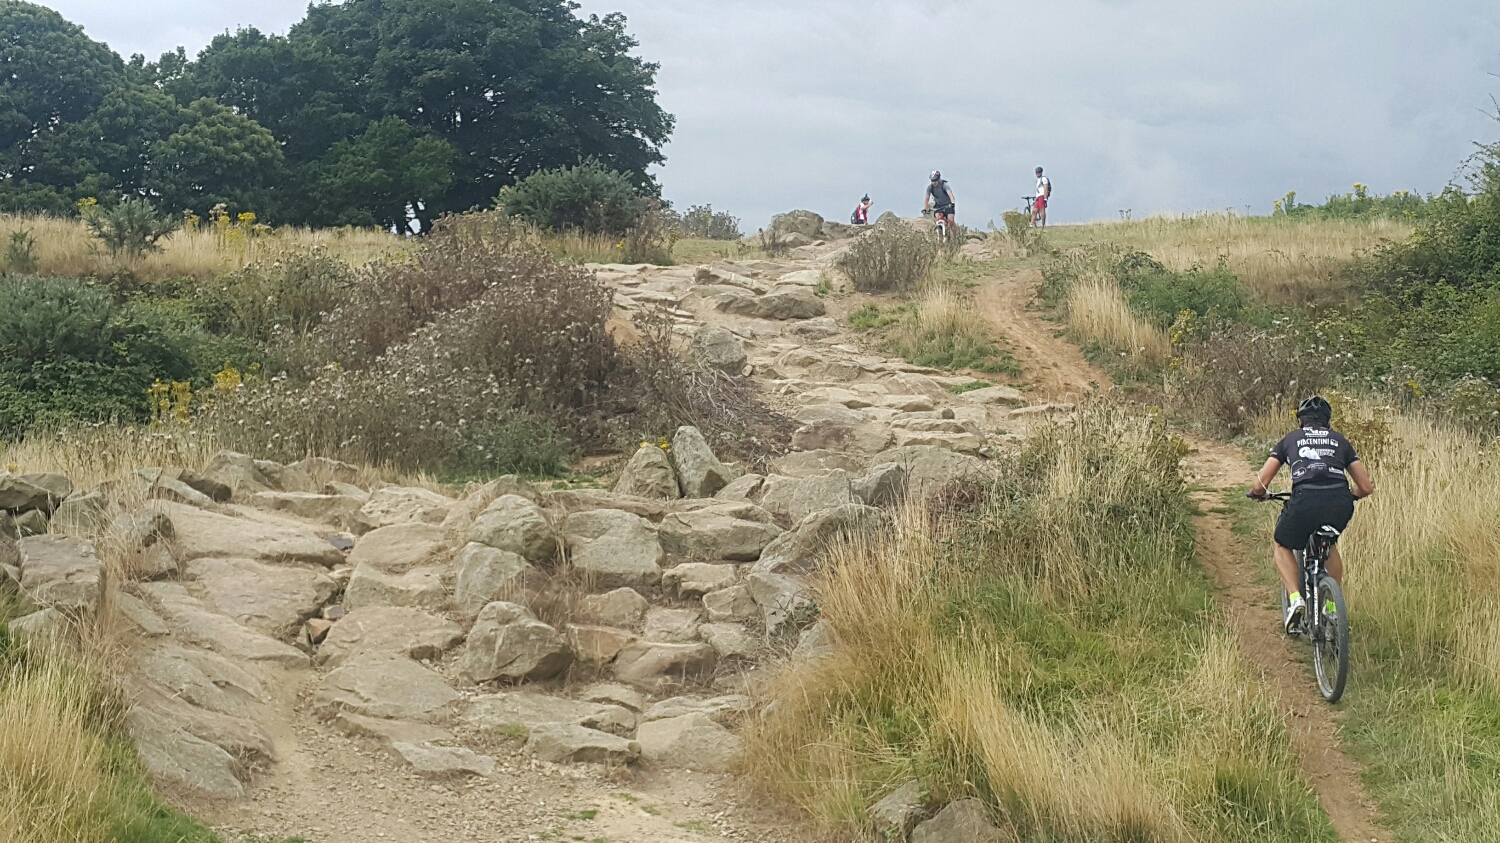 This is the rock garden. One of the man made sections.